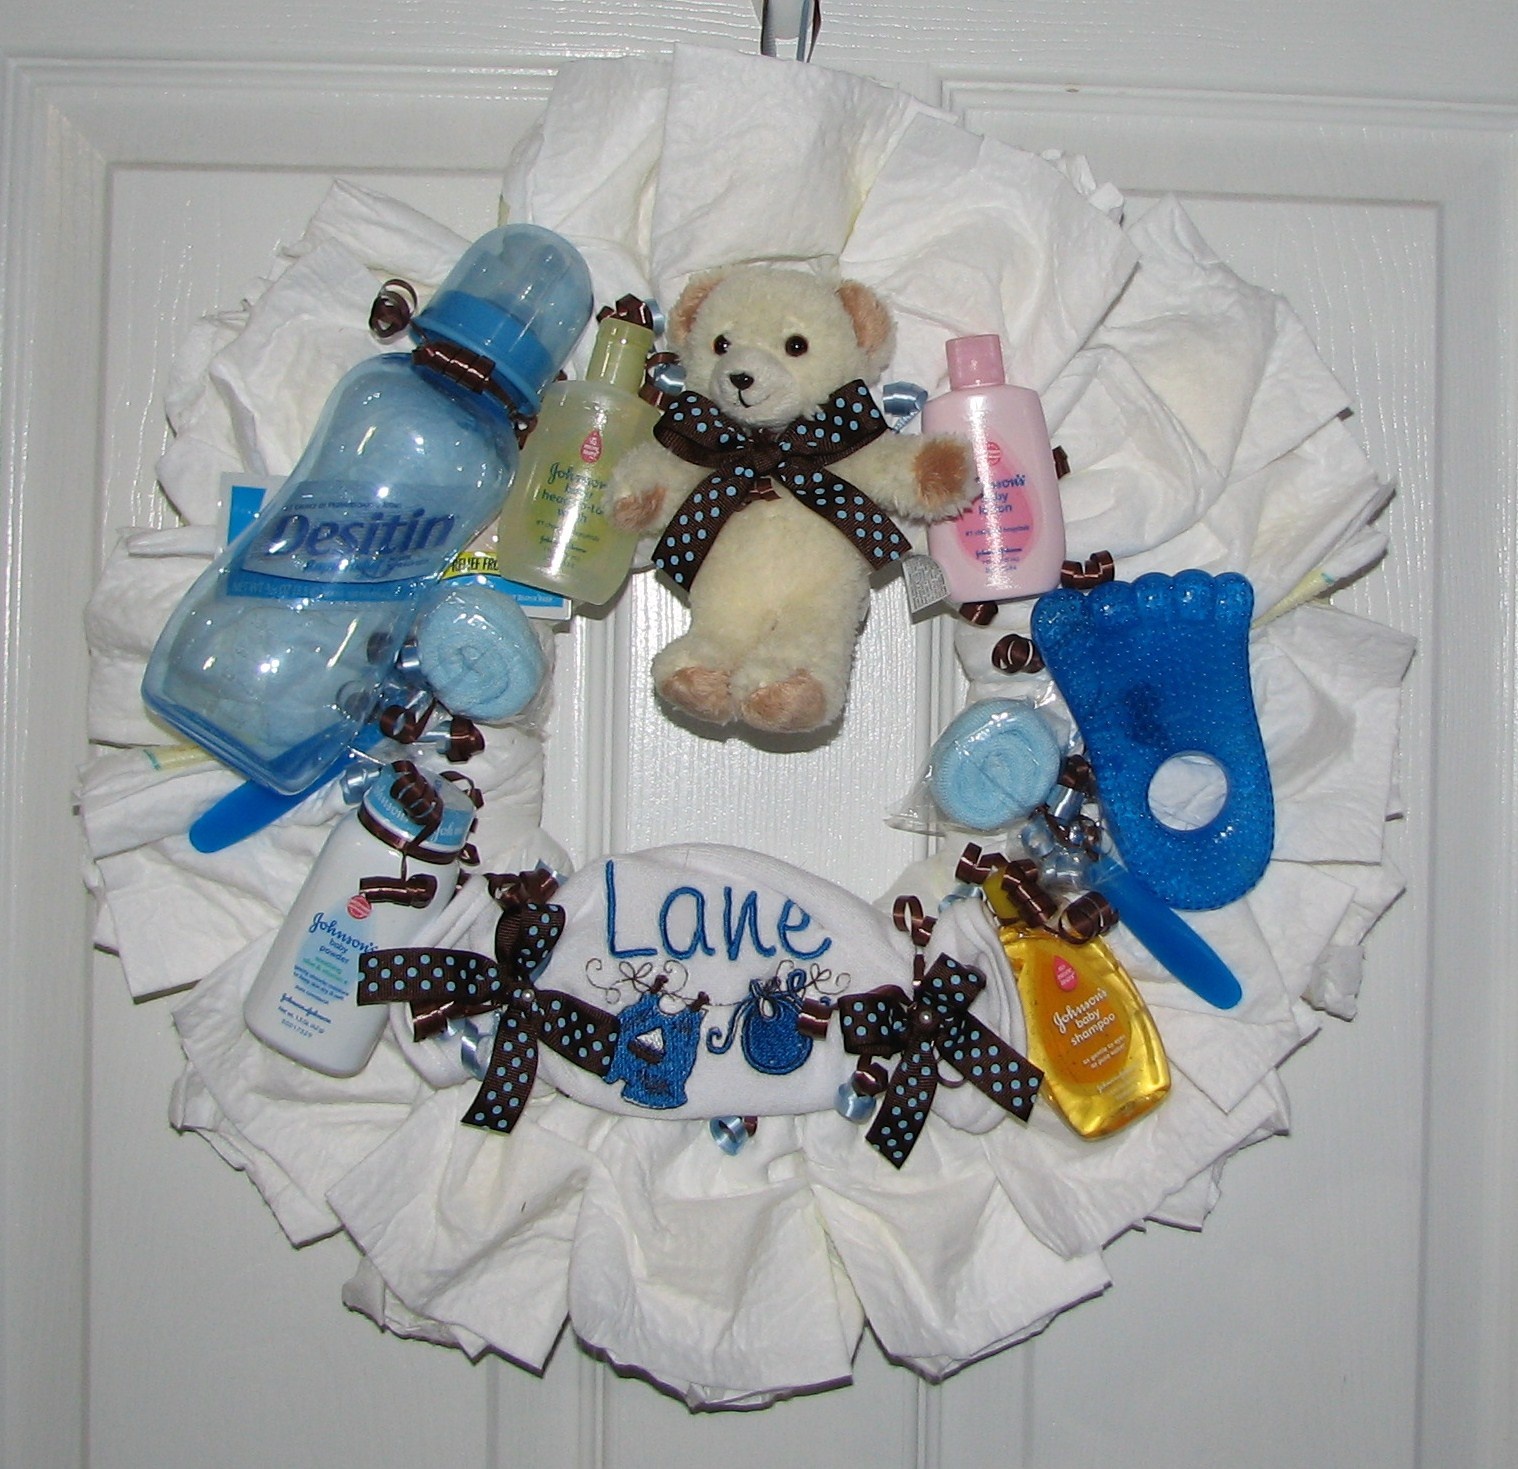 Blue-Brown-Polka-Dot-Diaper-Wreath.JPG - Blue & Brown Polka Dot Diaper Wreath